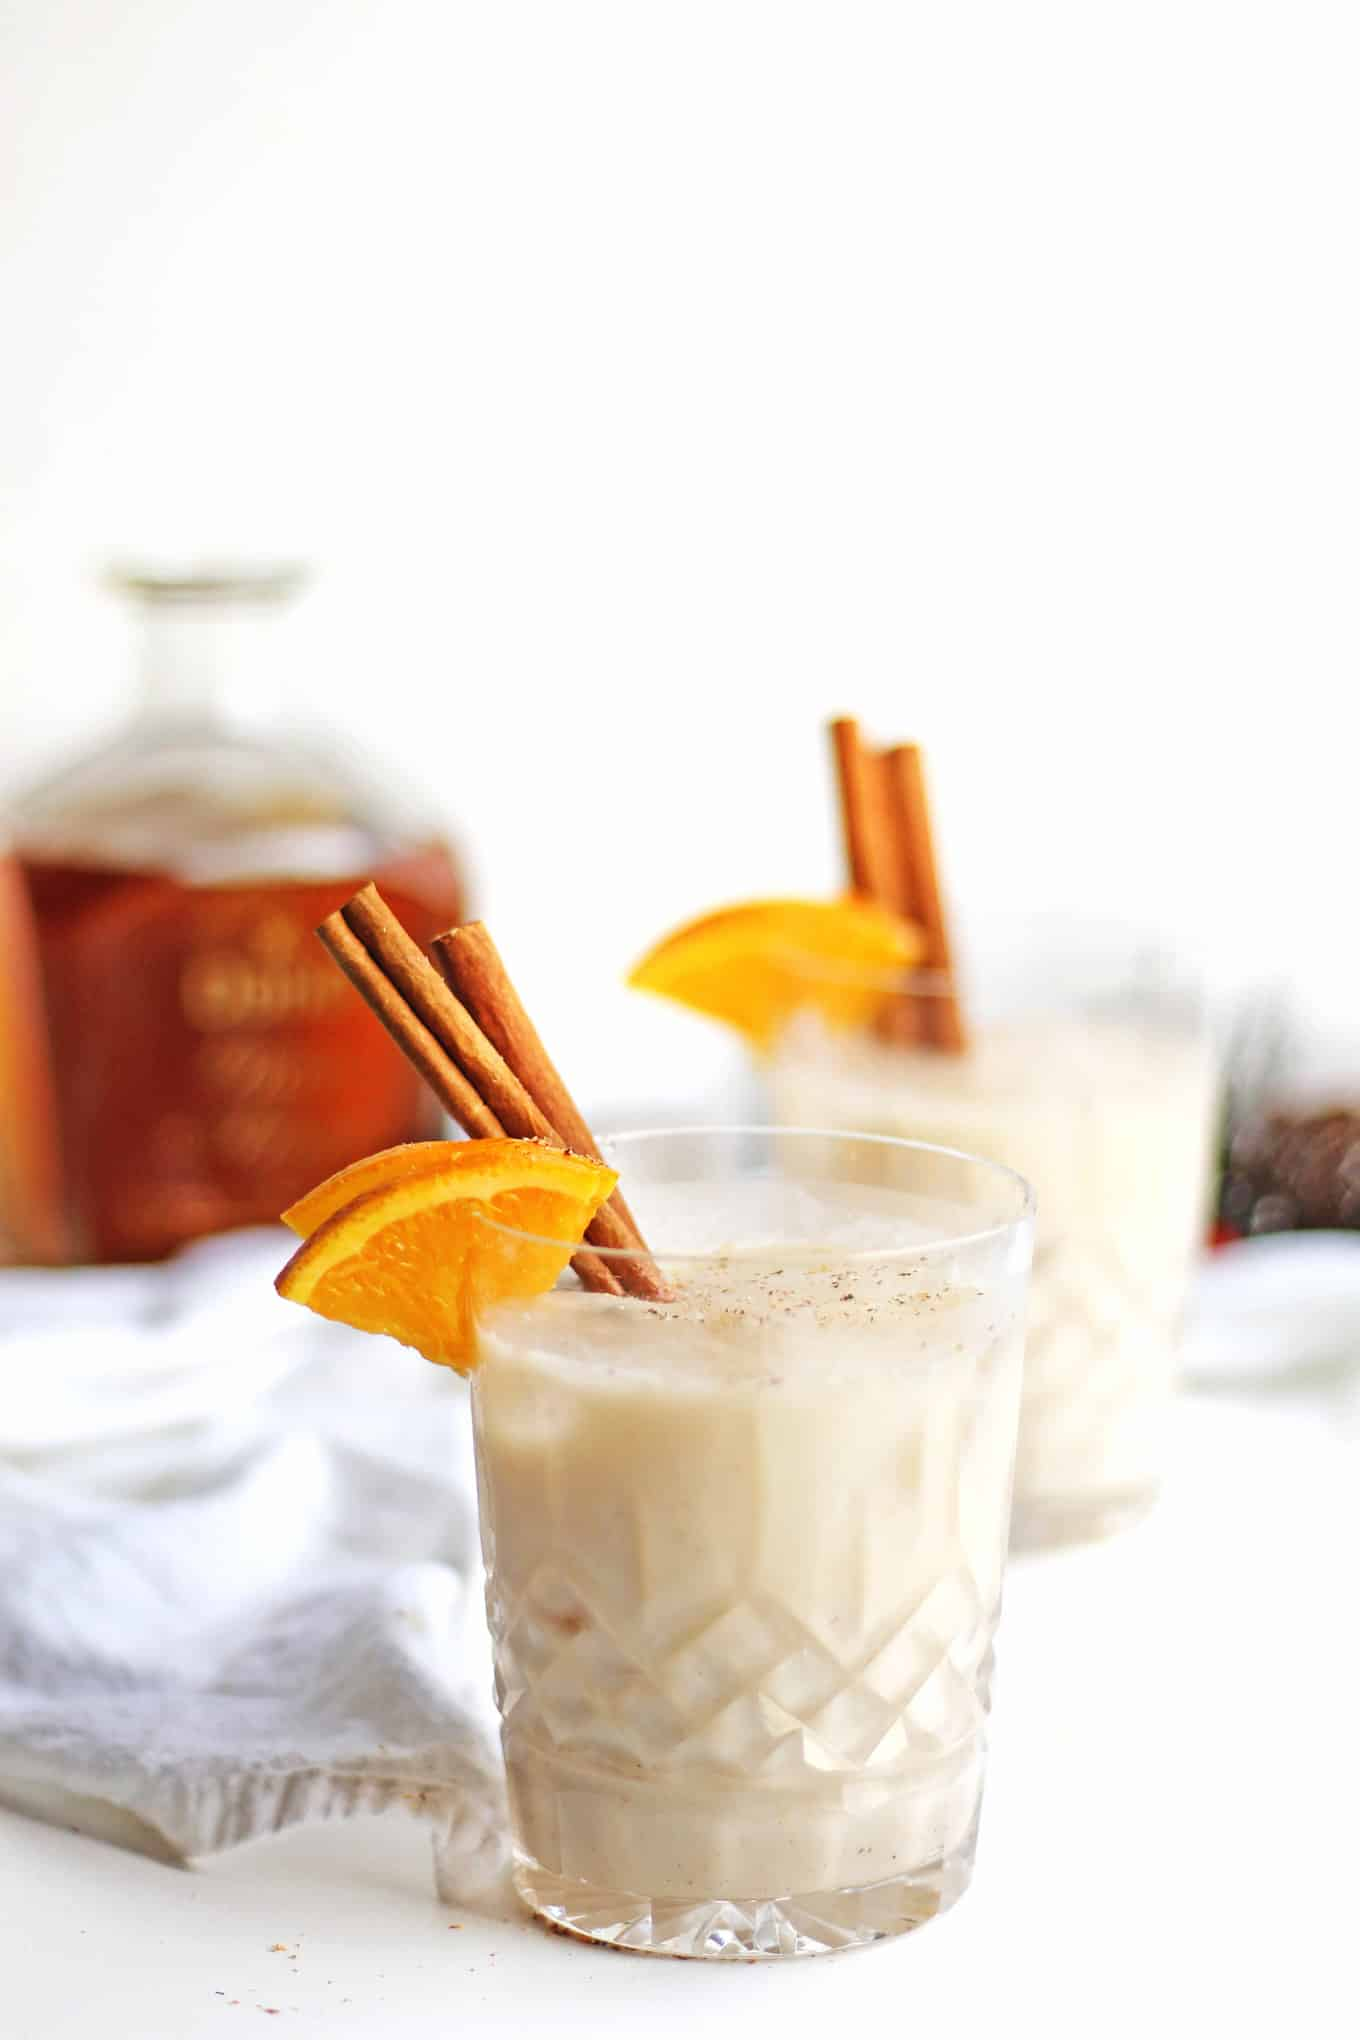 Vegan coquito with cinnamon stick